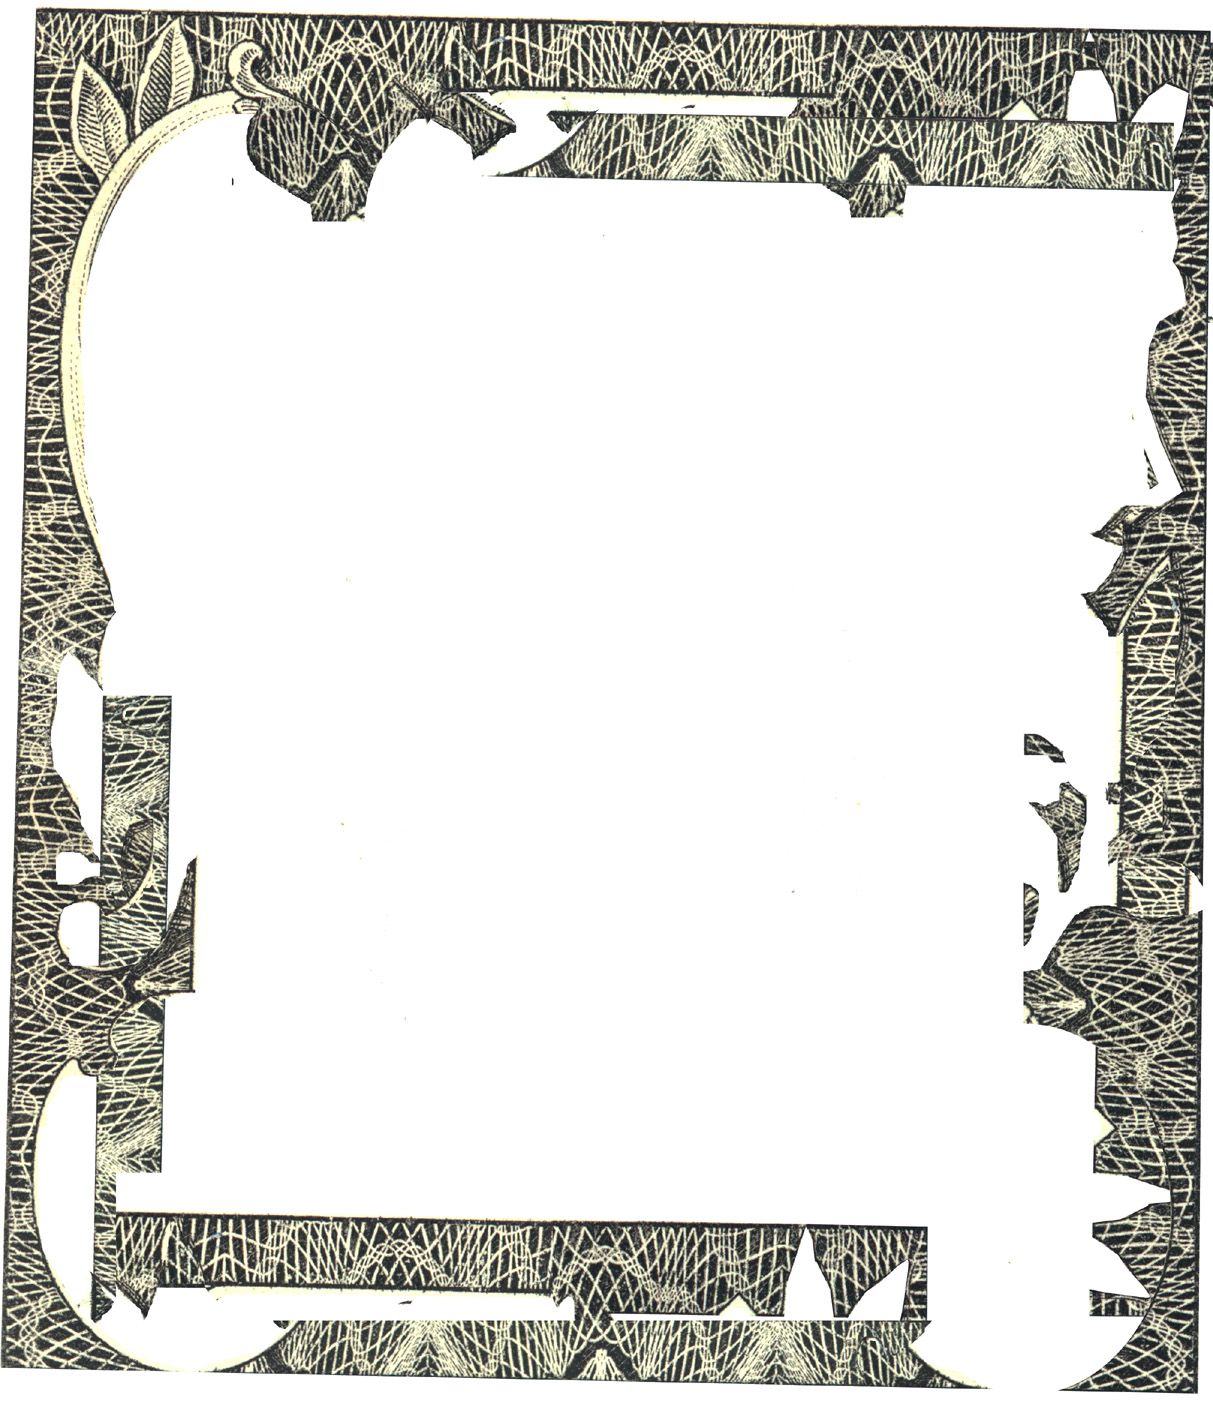 background clearly no owls no spiders just peaks in a sinusoidal like web of lines - Dollar Bill Frame